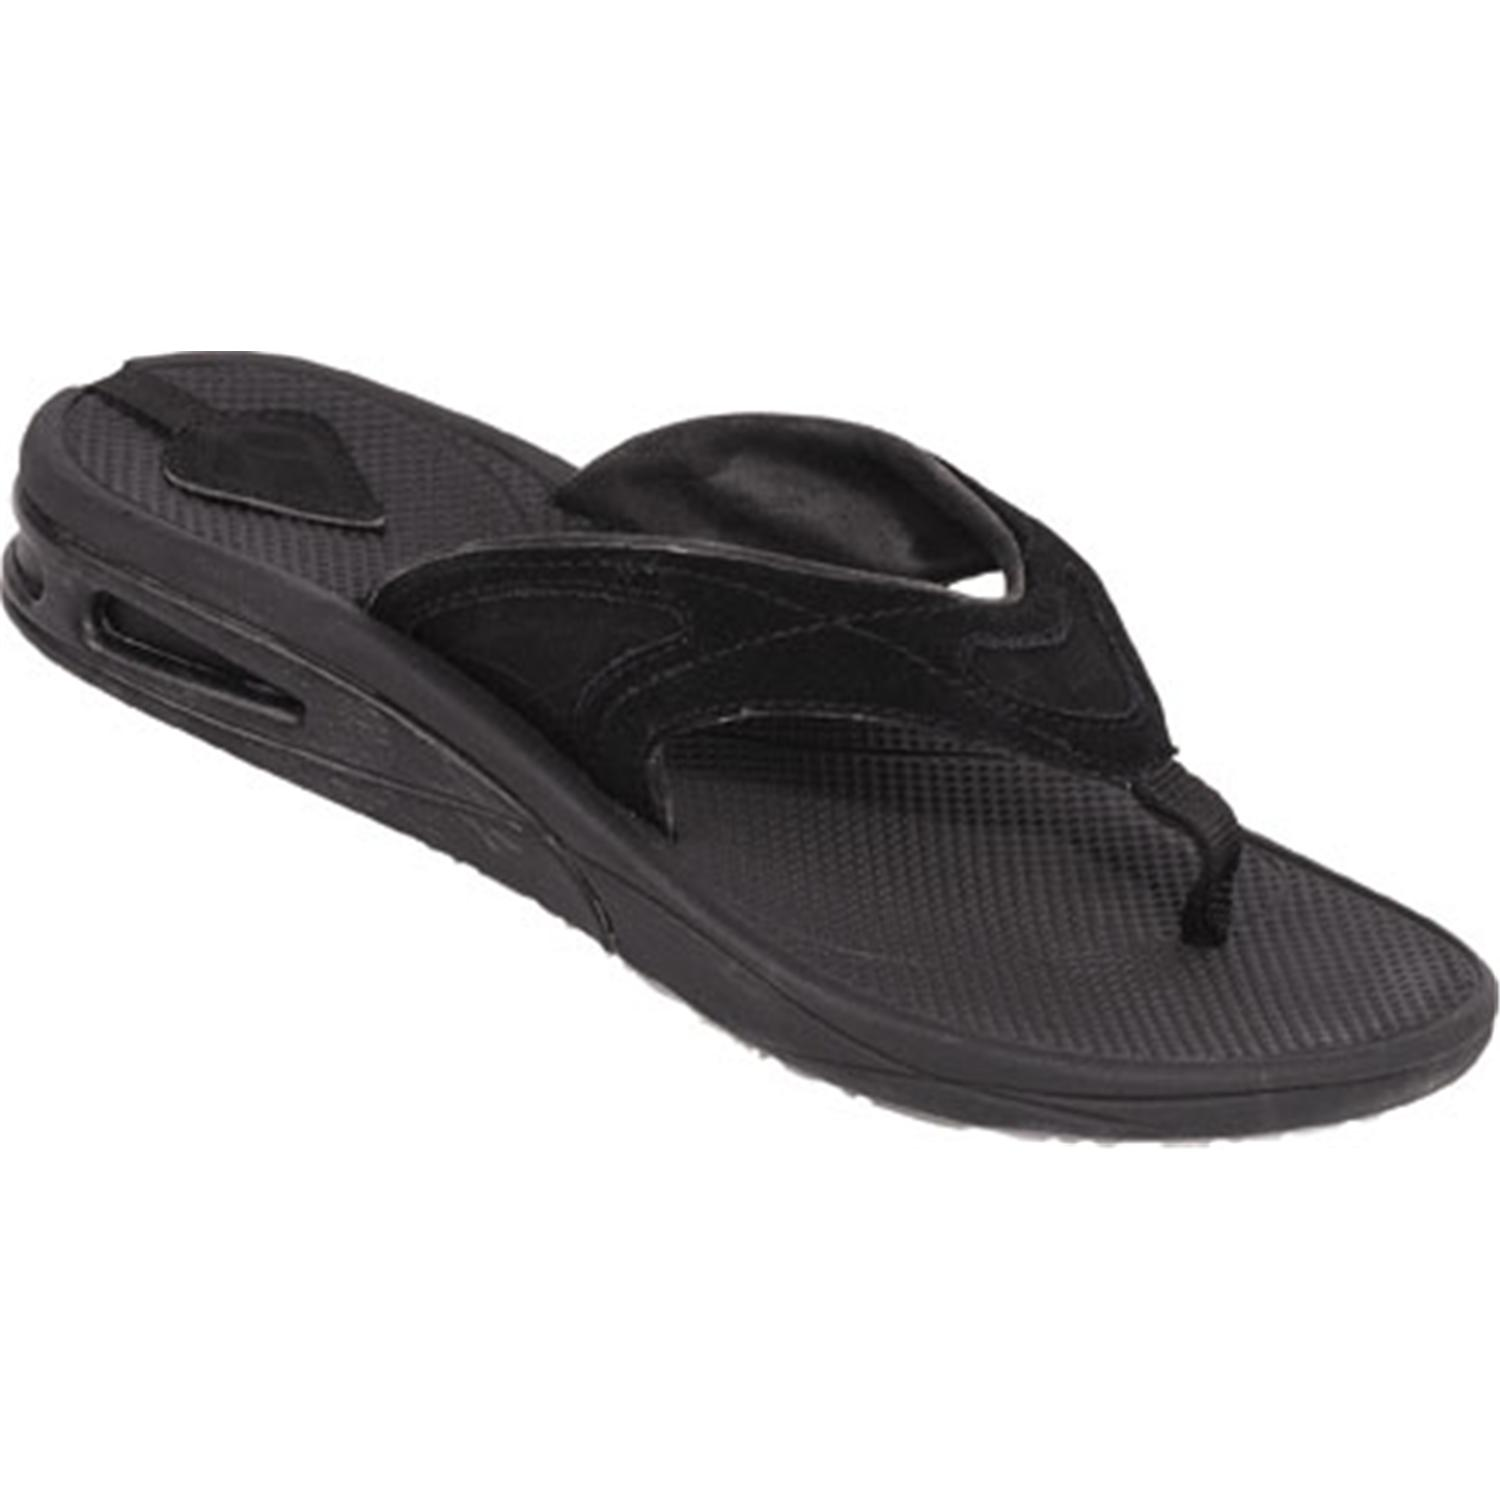 Simple Besides, The Reef Stash Sandals Sure Look Comfortable Enough To Wear All Day Long Without Resulting In Blisters Just Make Sure Your Sandals Dont Get Washed Away Accidentally To The Sea Because Youre Too Engrossed Watching The